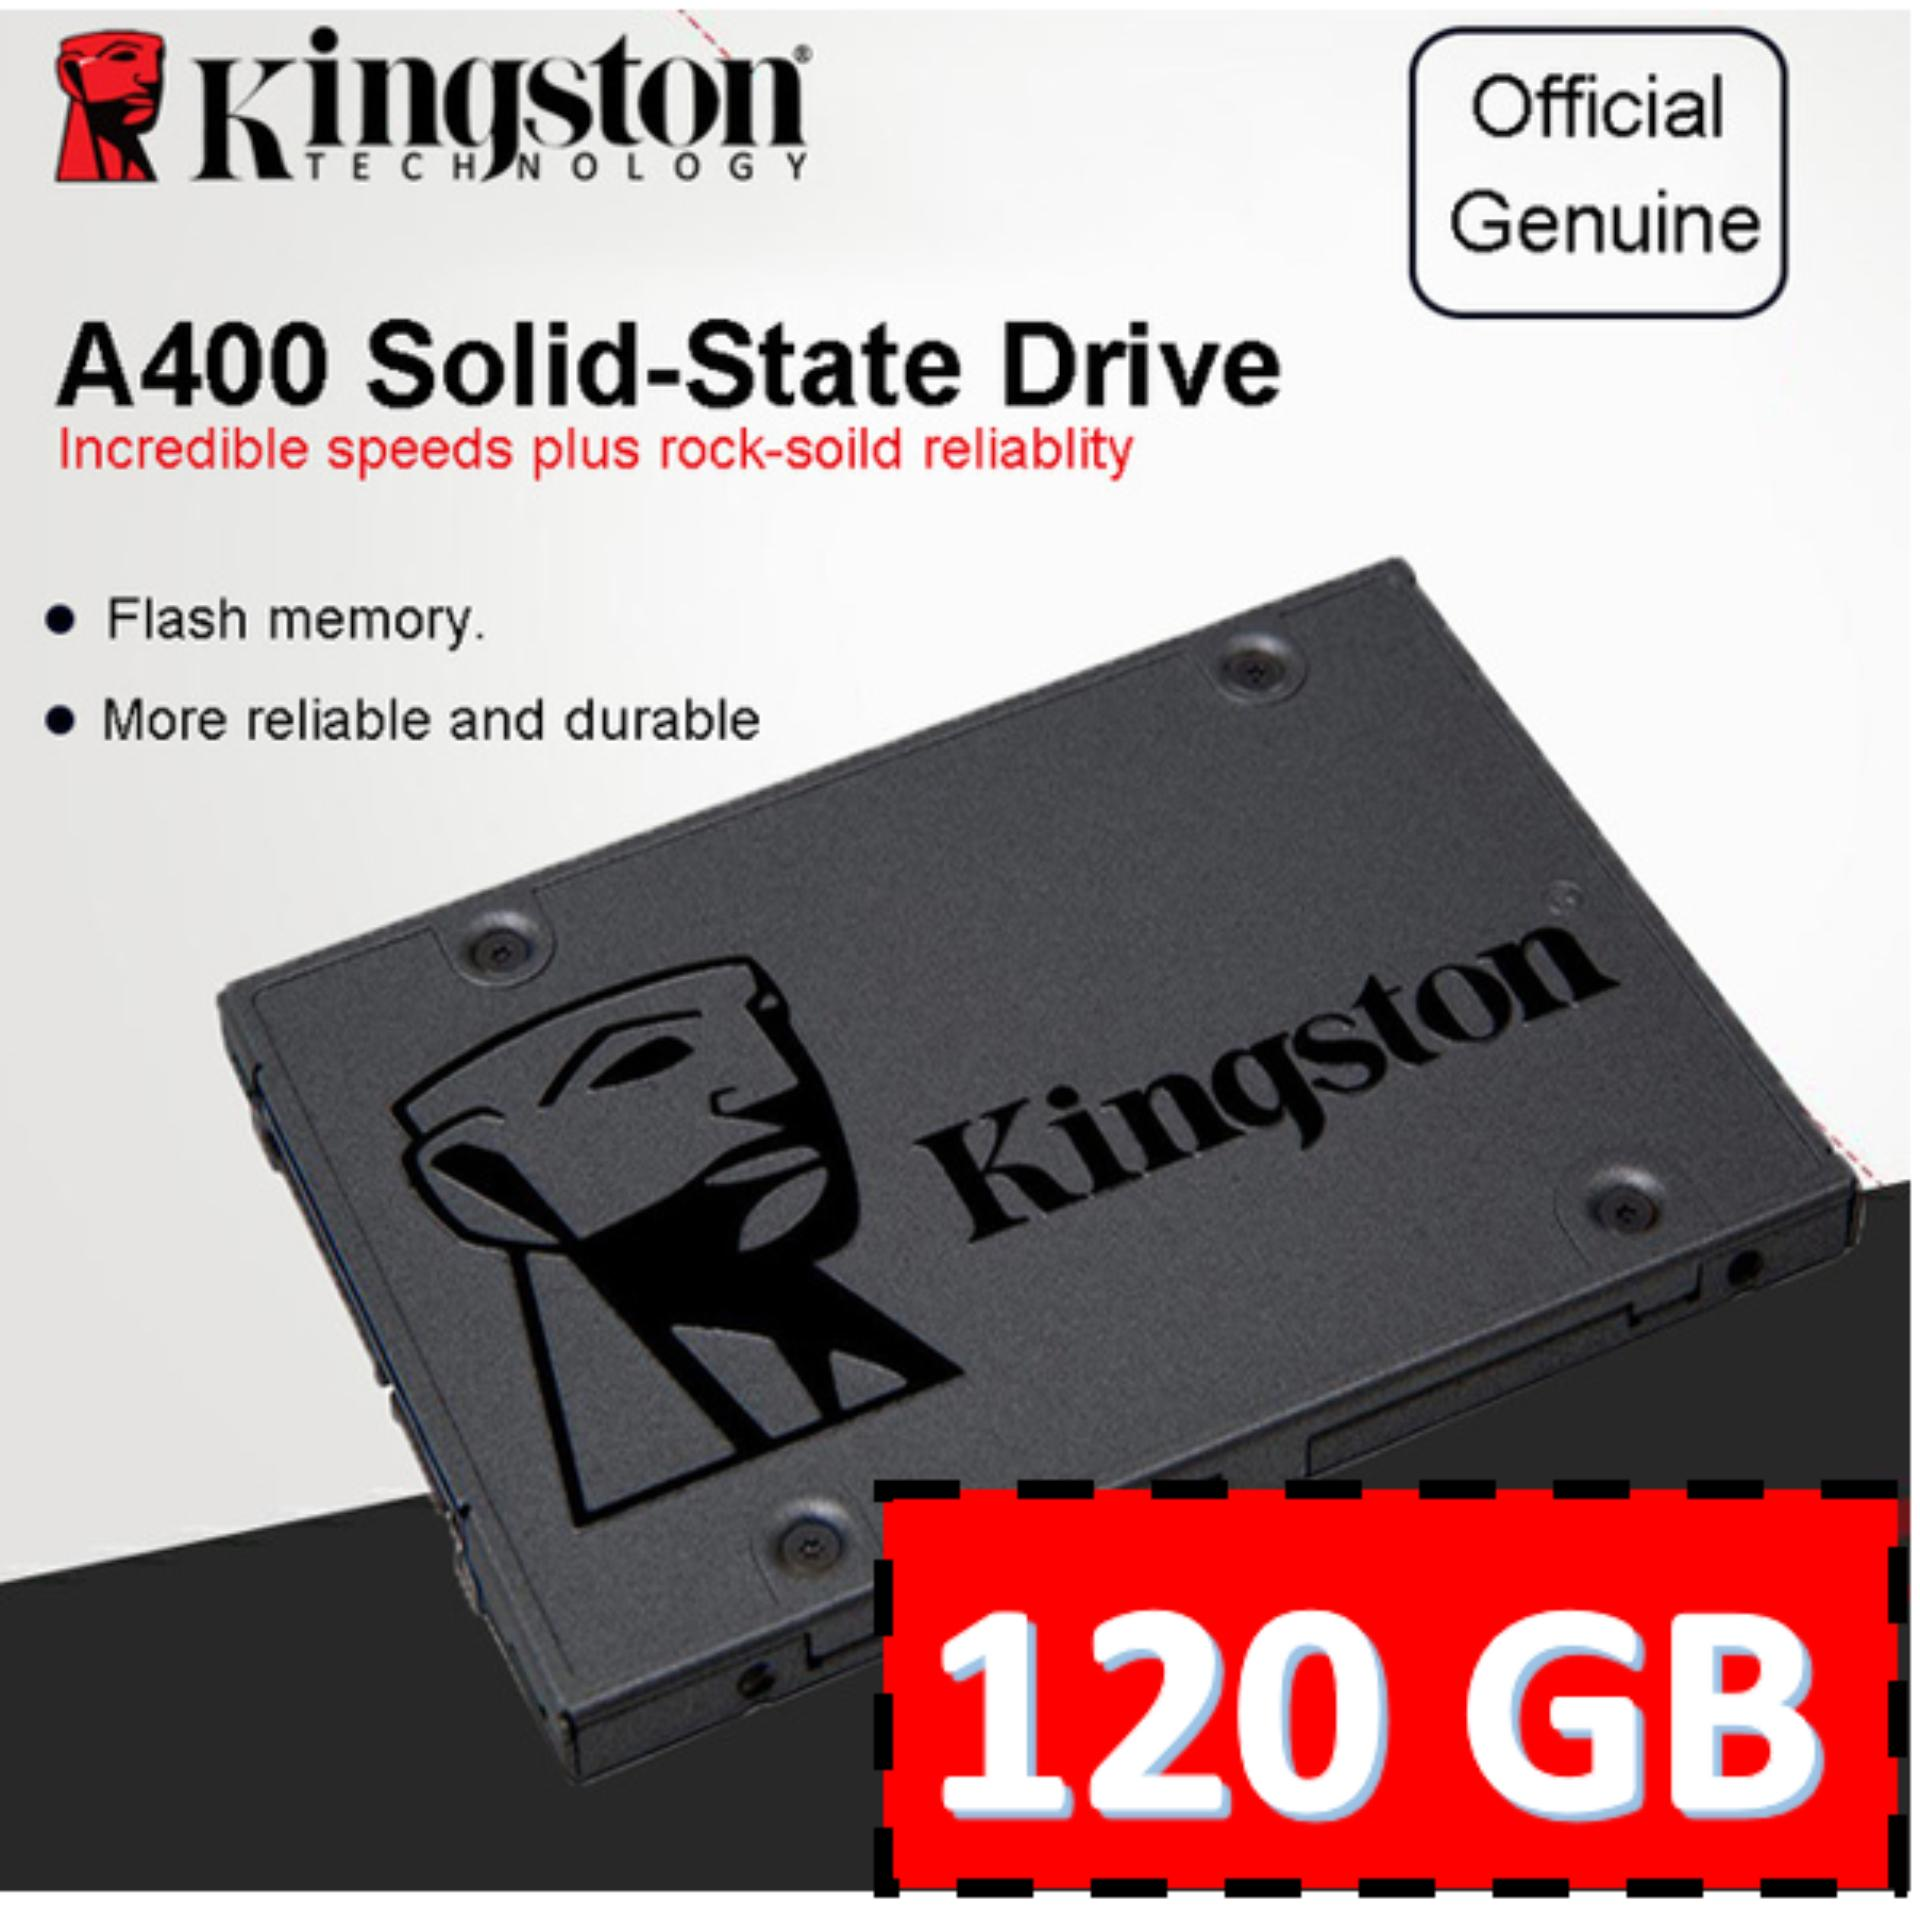 Kingston 120gb Ssdnow A400 Sata Iii 25 Ssd Singapore